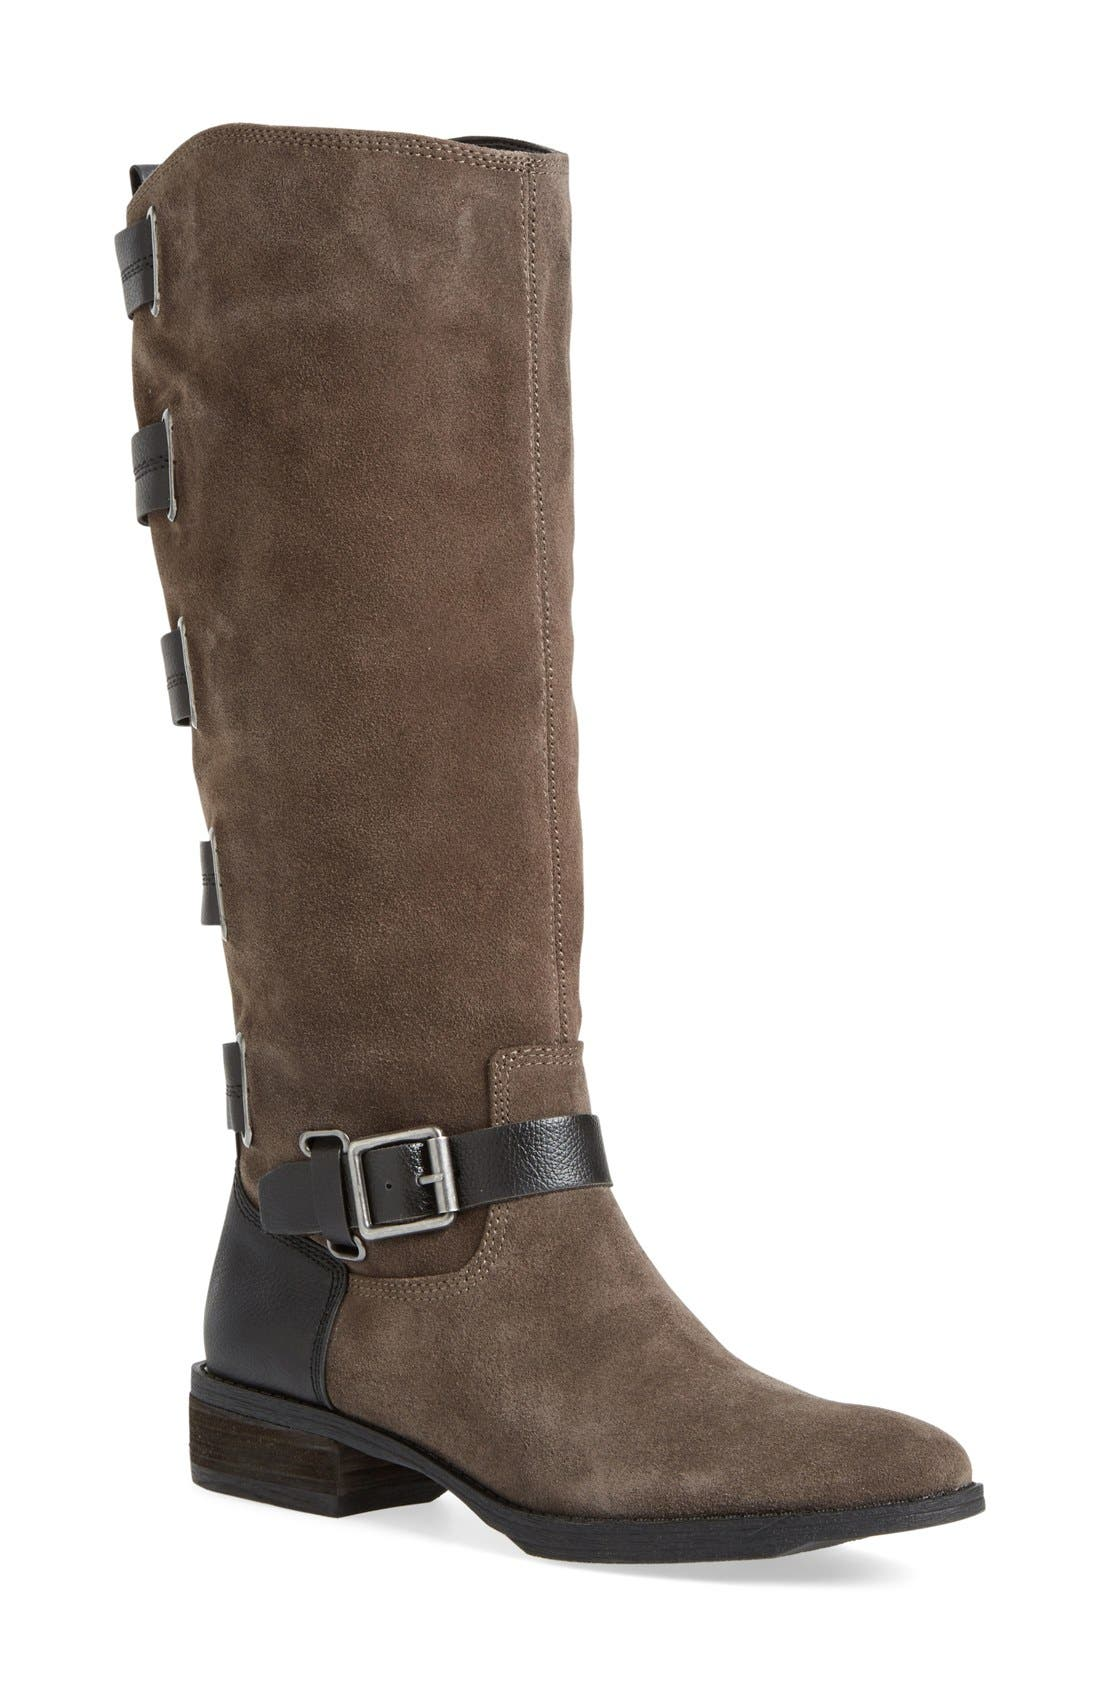 Main Image - Sole Society 'Franzie' Leather Knee High Boot